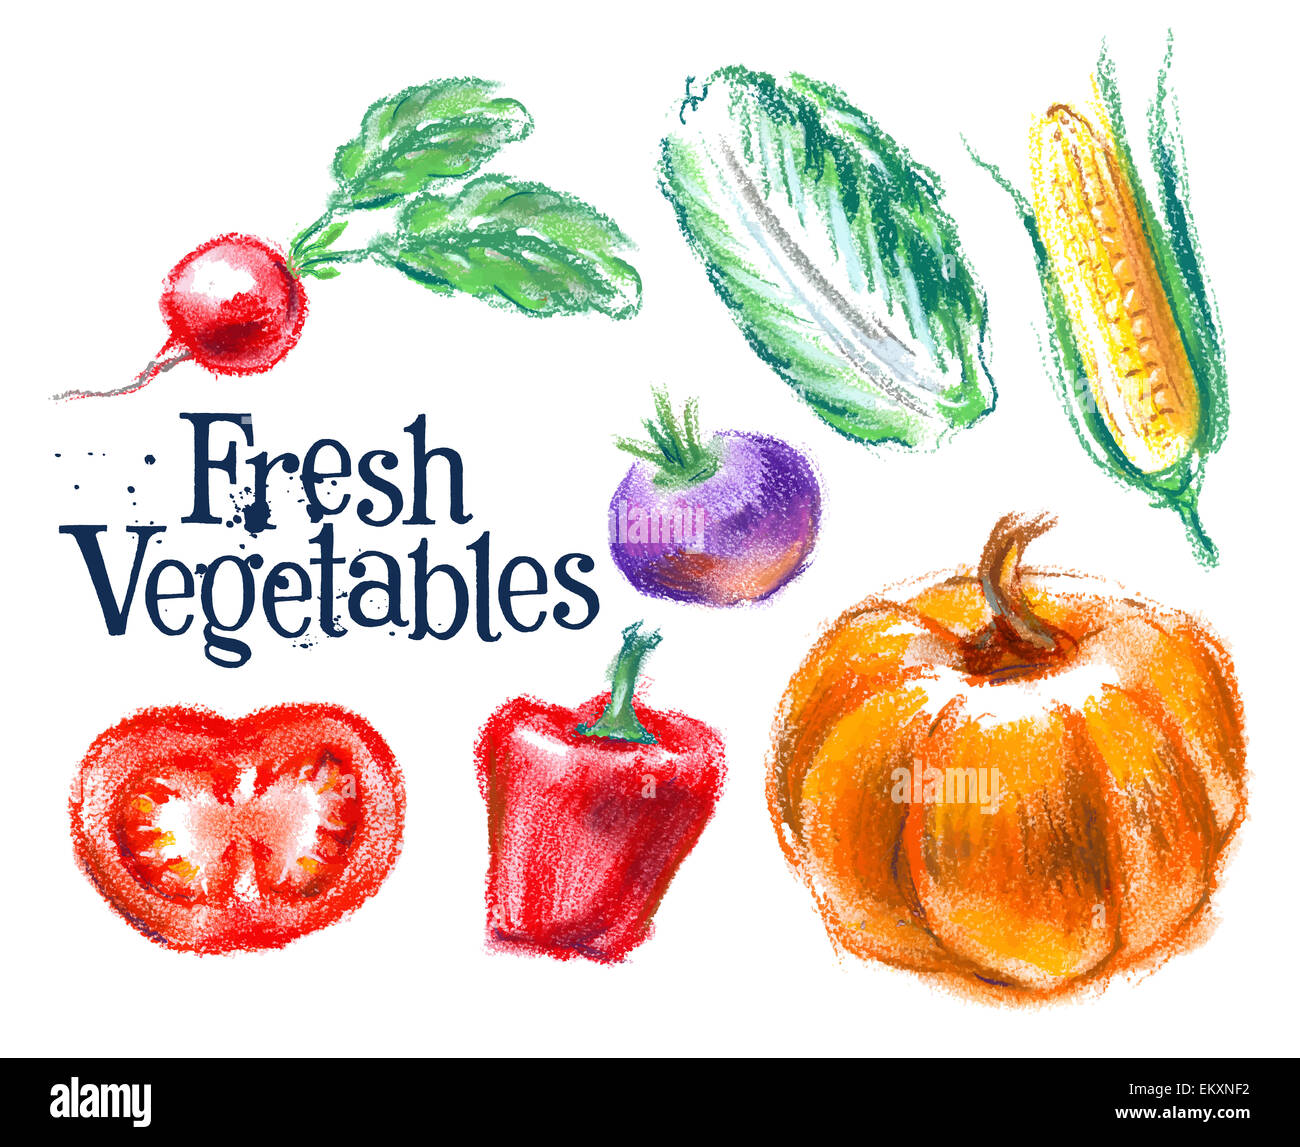 vegetables vector logo design template fresh food or harvest icon